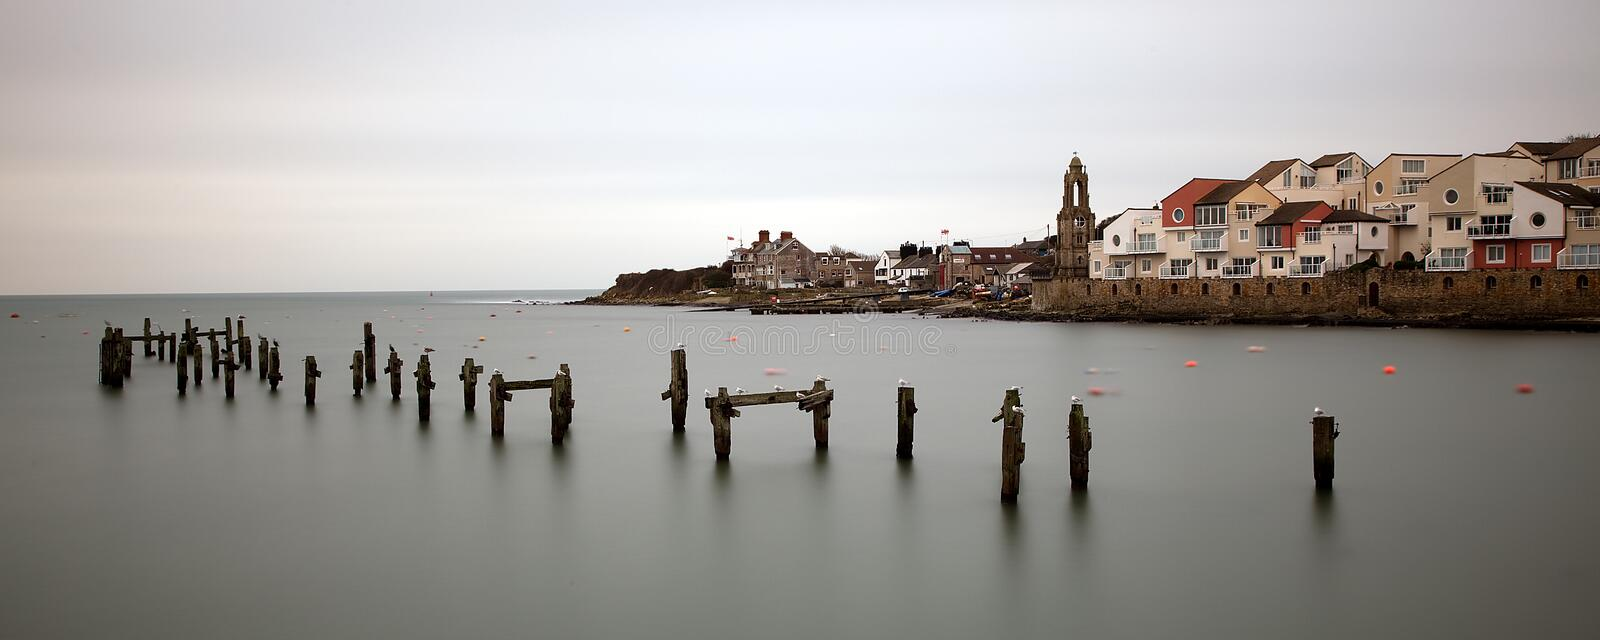 Swanage Town Coastline Royalty Free Stock Images